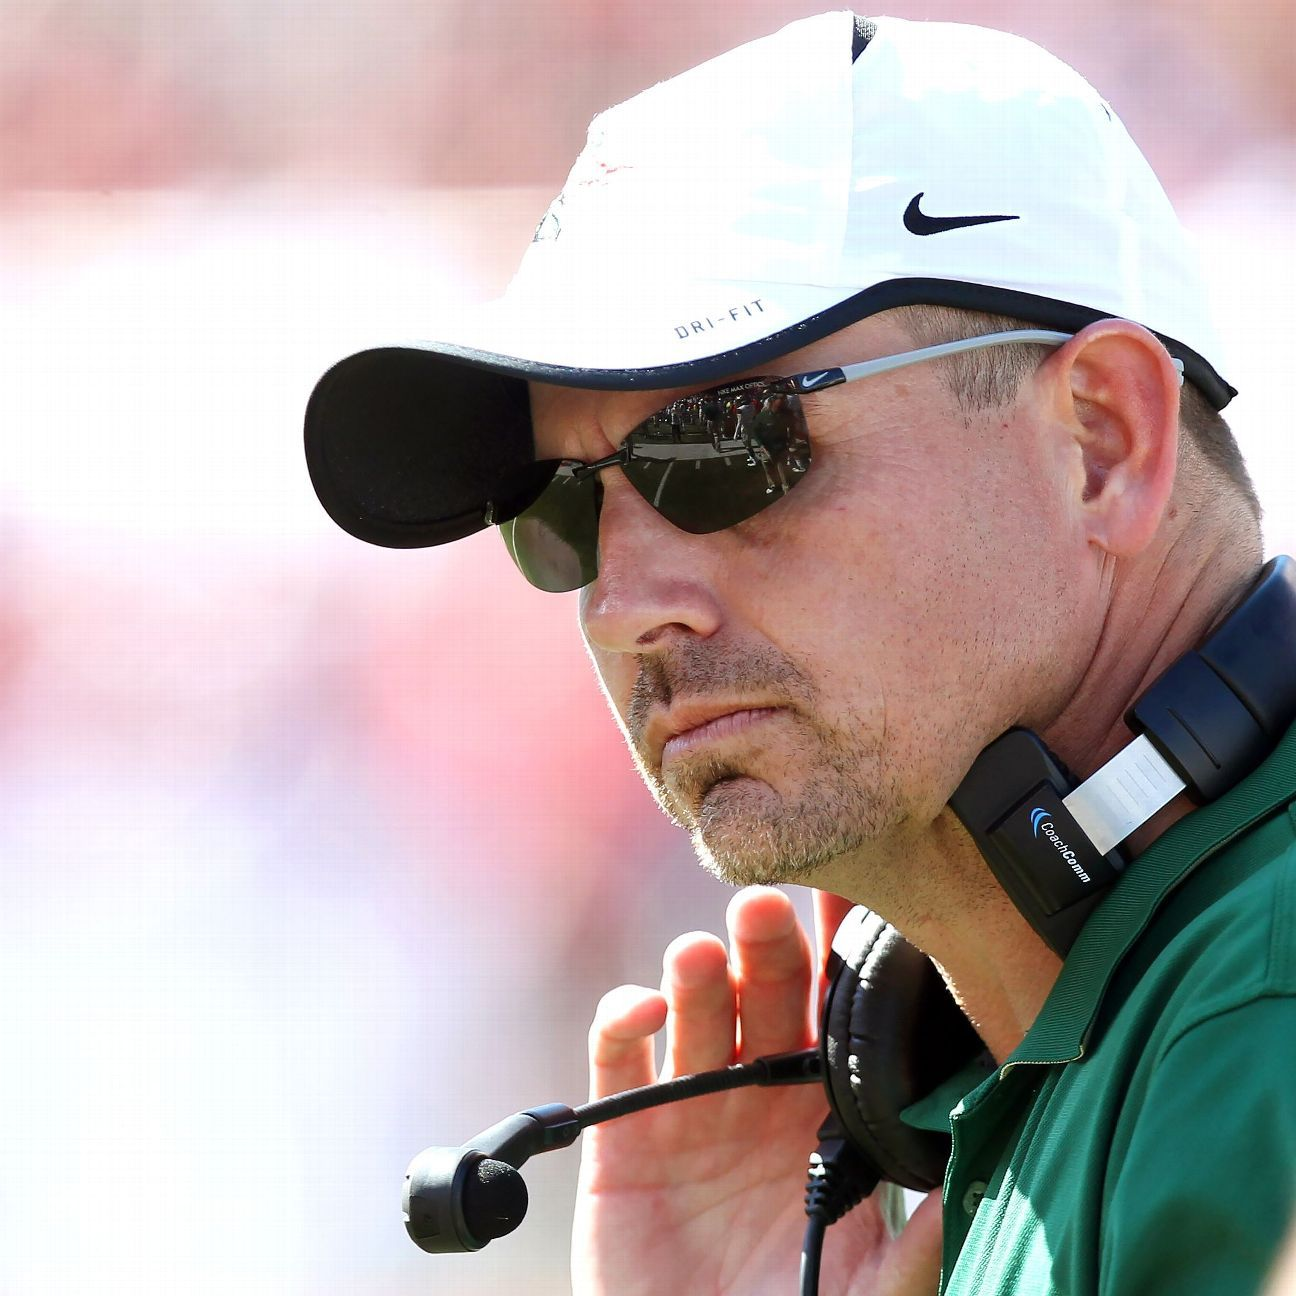 At UAB, Bill Clark sees tough job turn into college